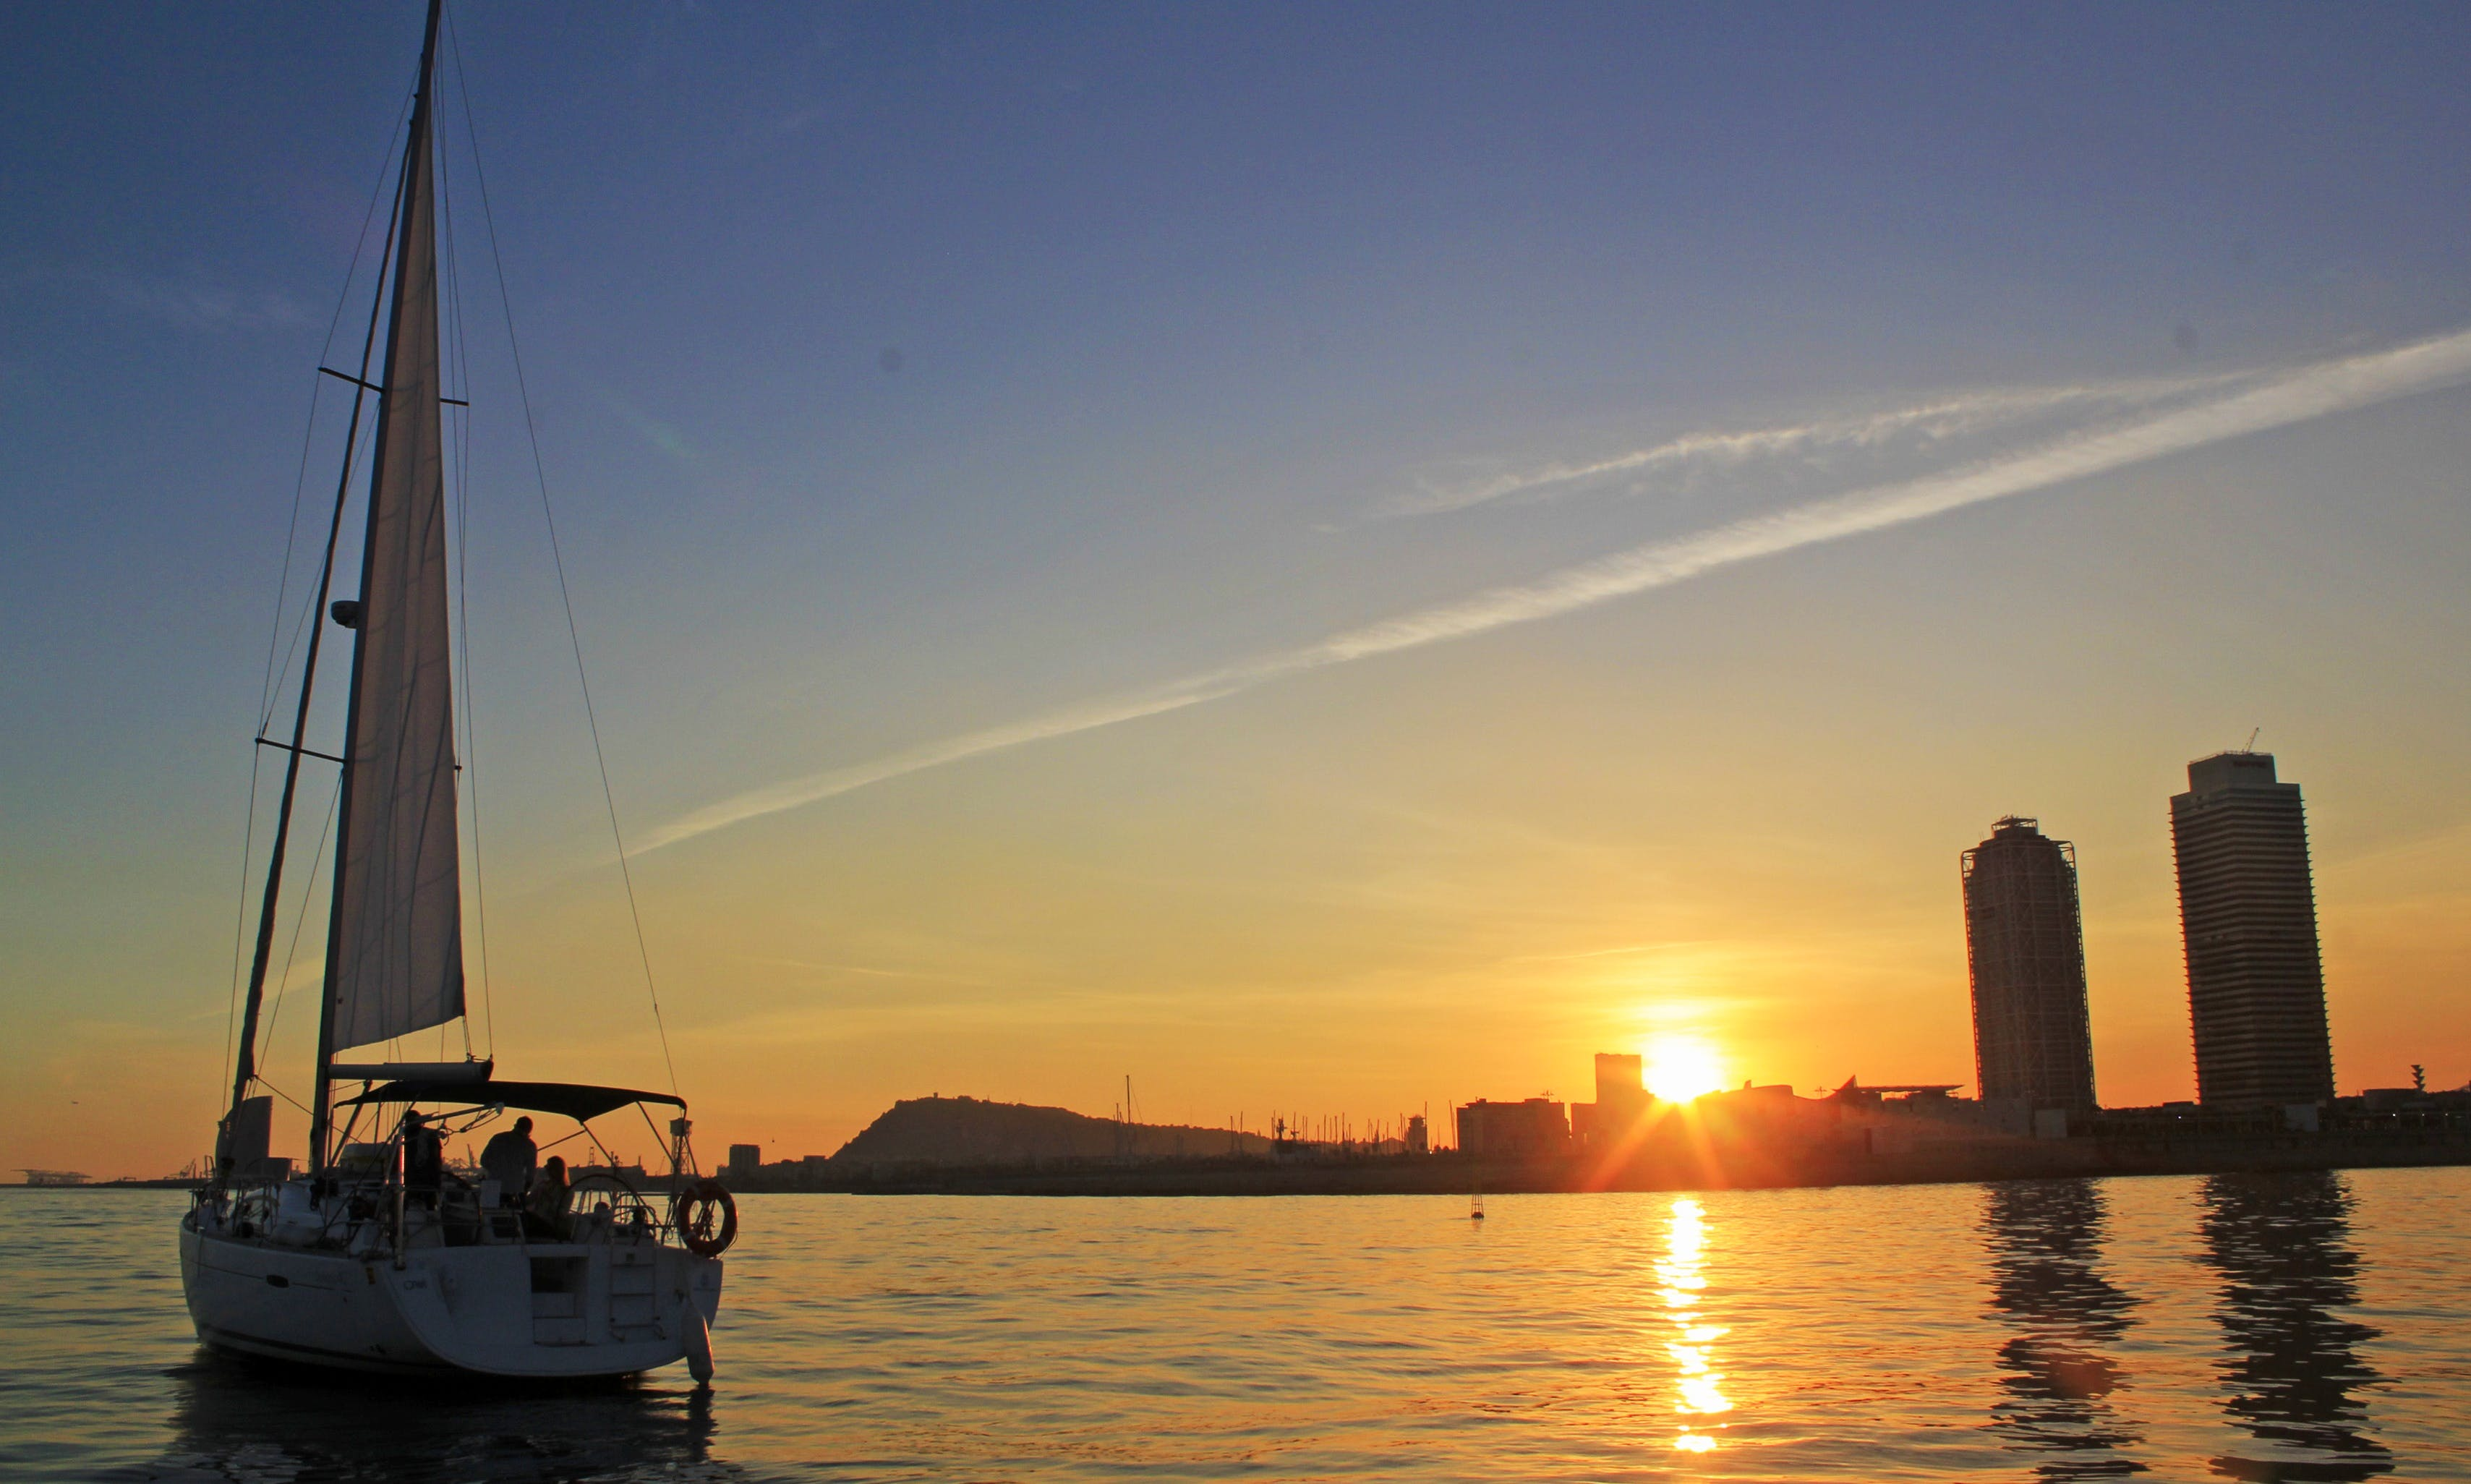 Sunset Sailing Experience at Barcelona's skyline